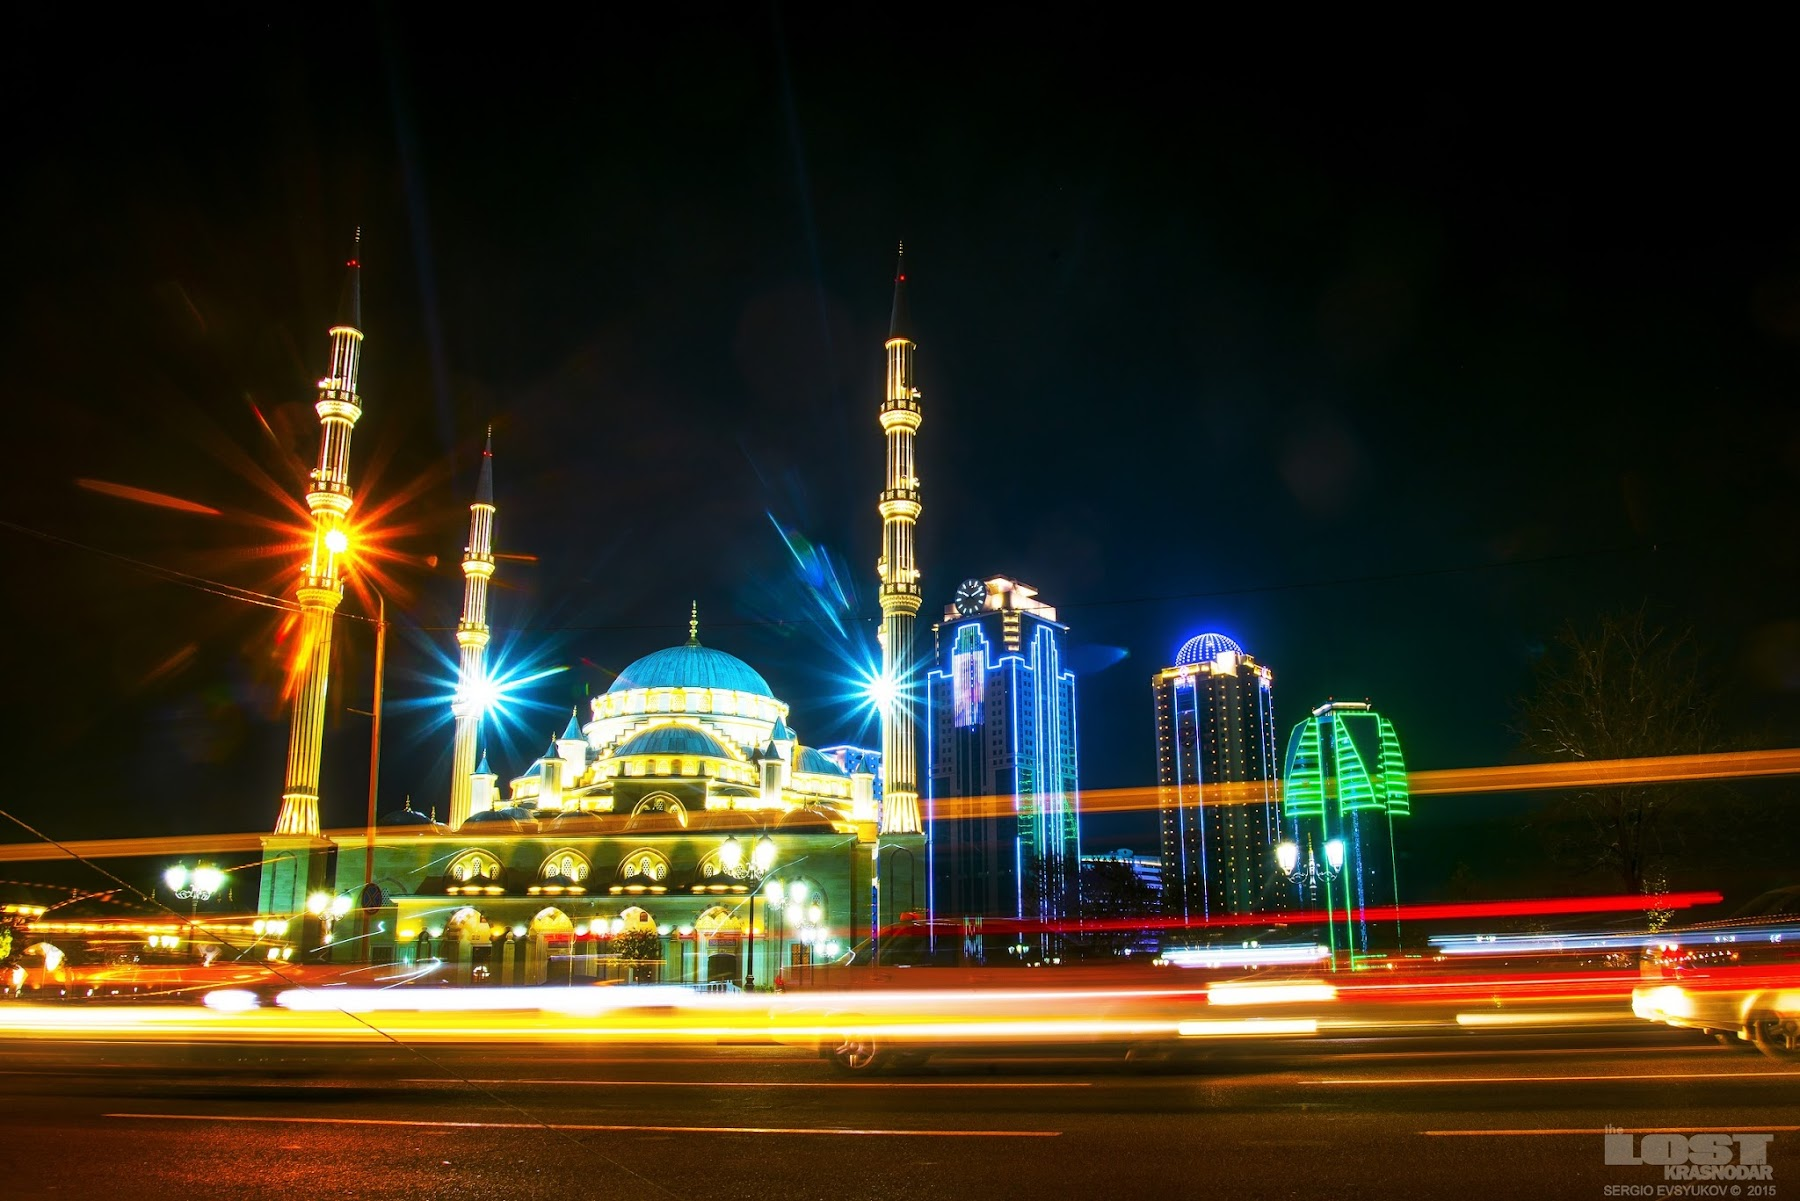 Night Chechnya